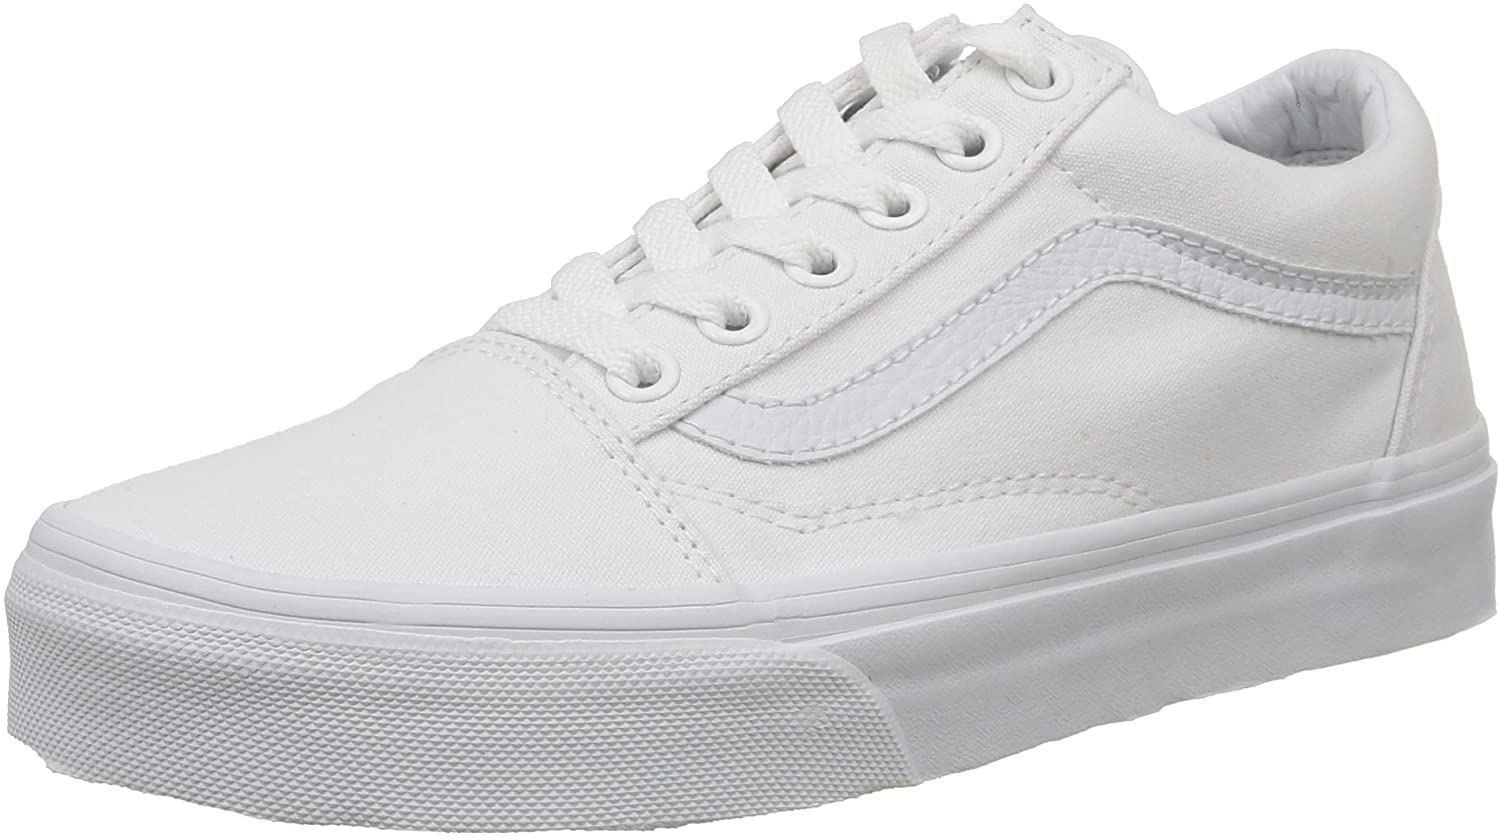 Vans' all-time favorite classic silhouette features durable suede and canvas upper and Vans signature Waffle outsole